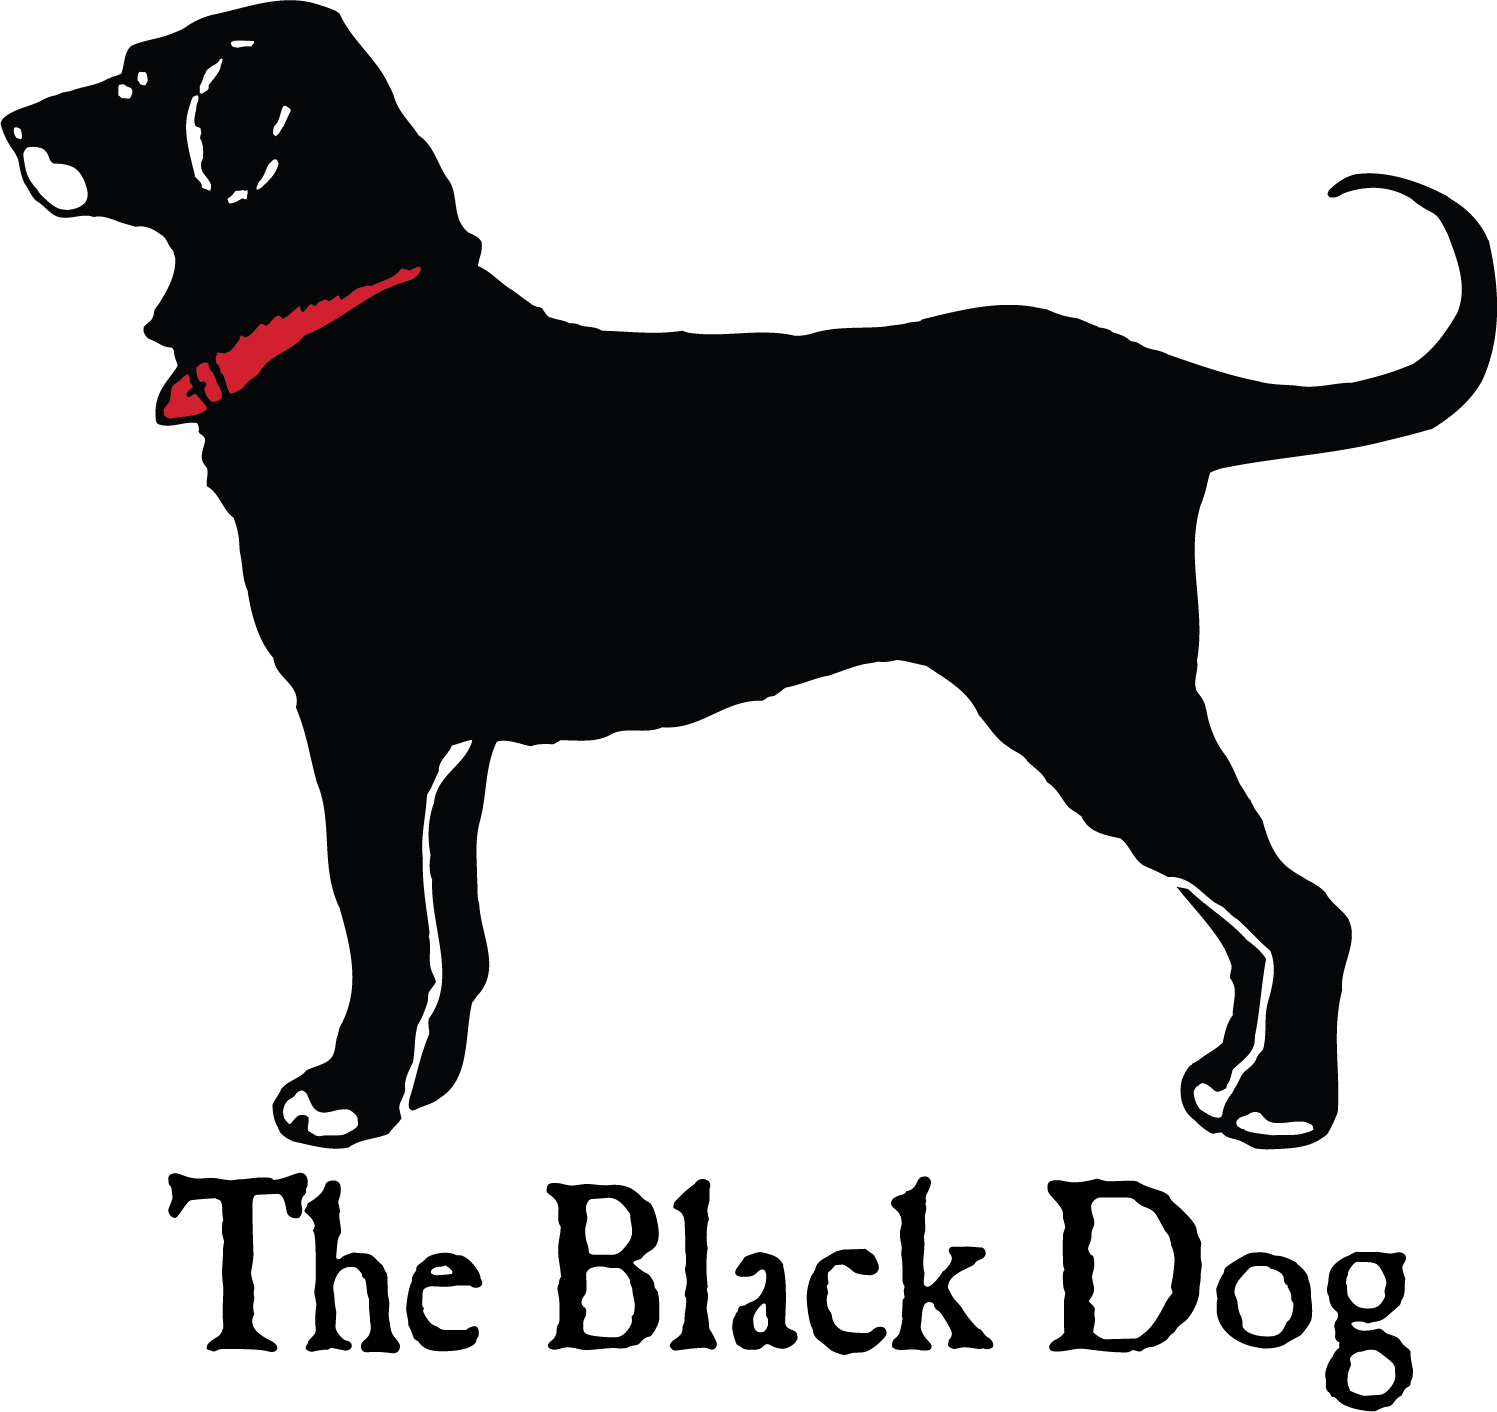 08The Black Dog